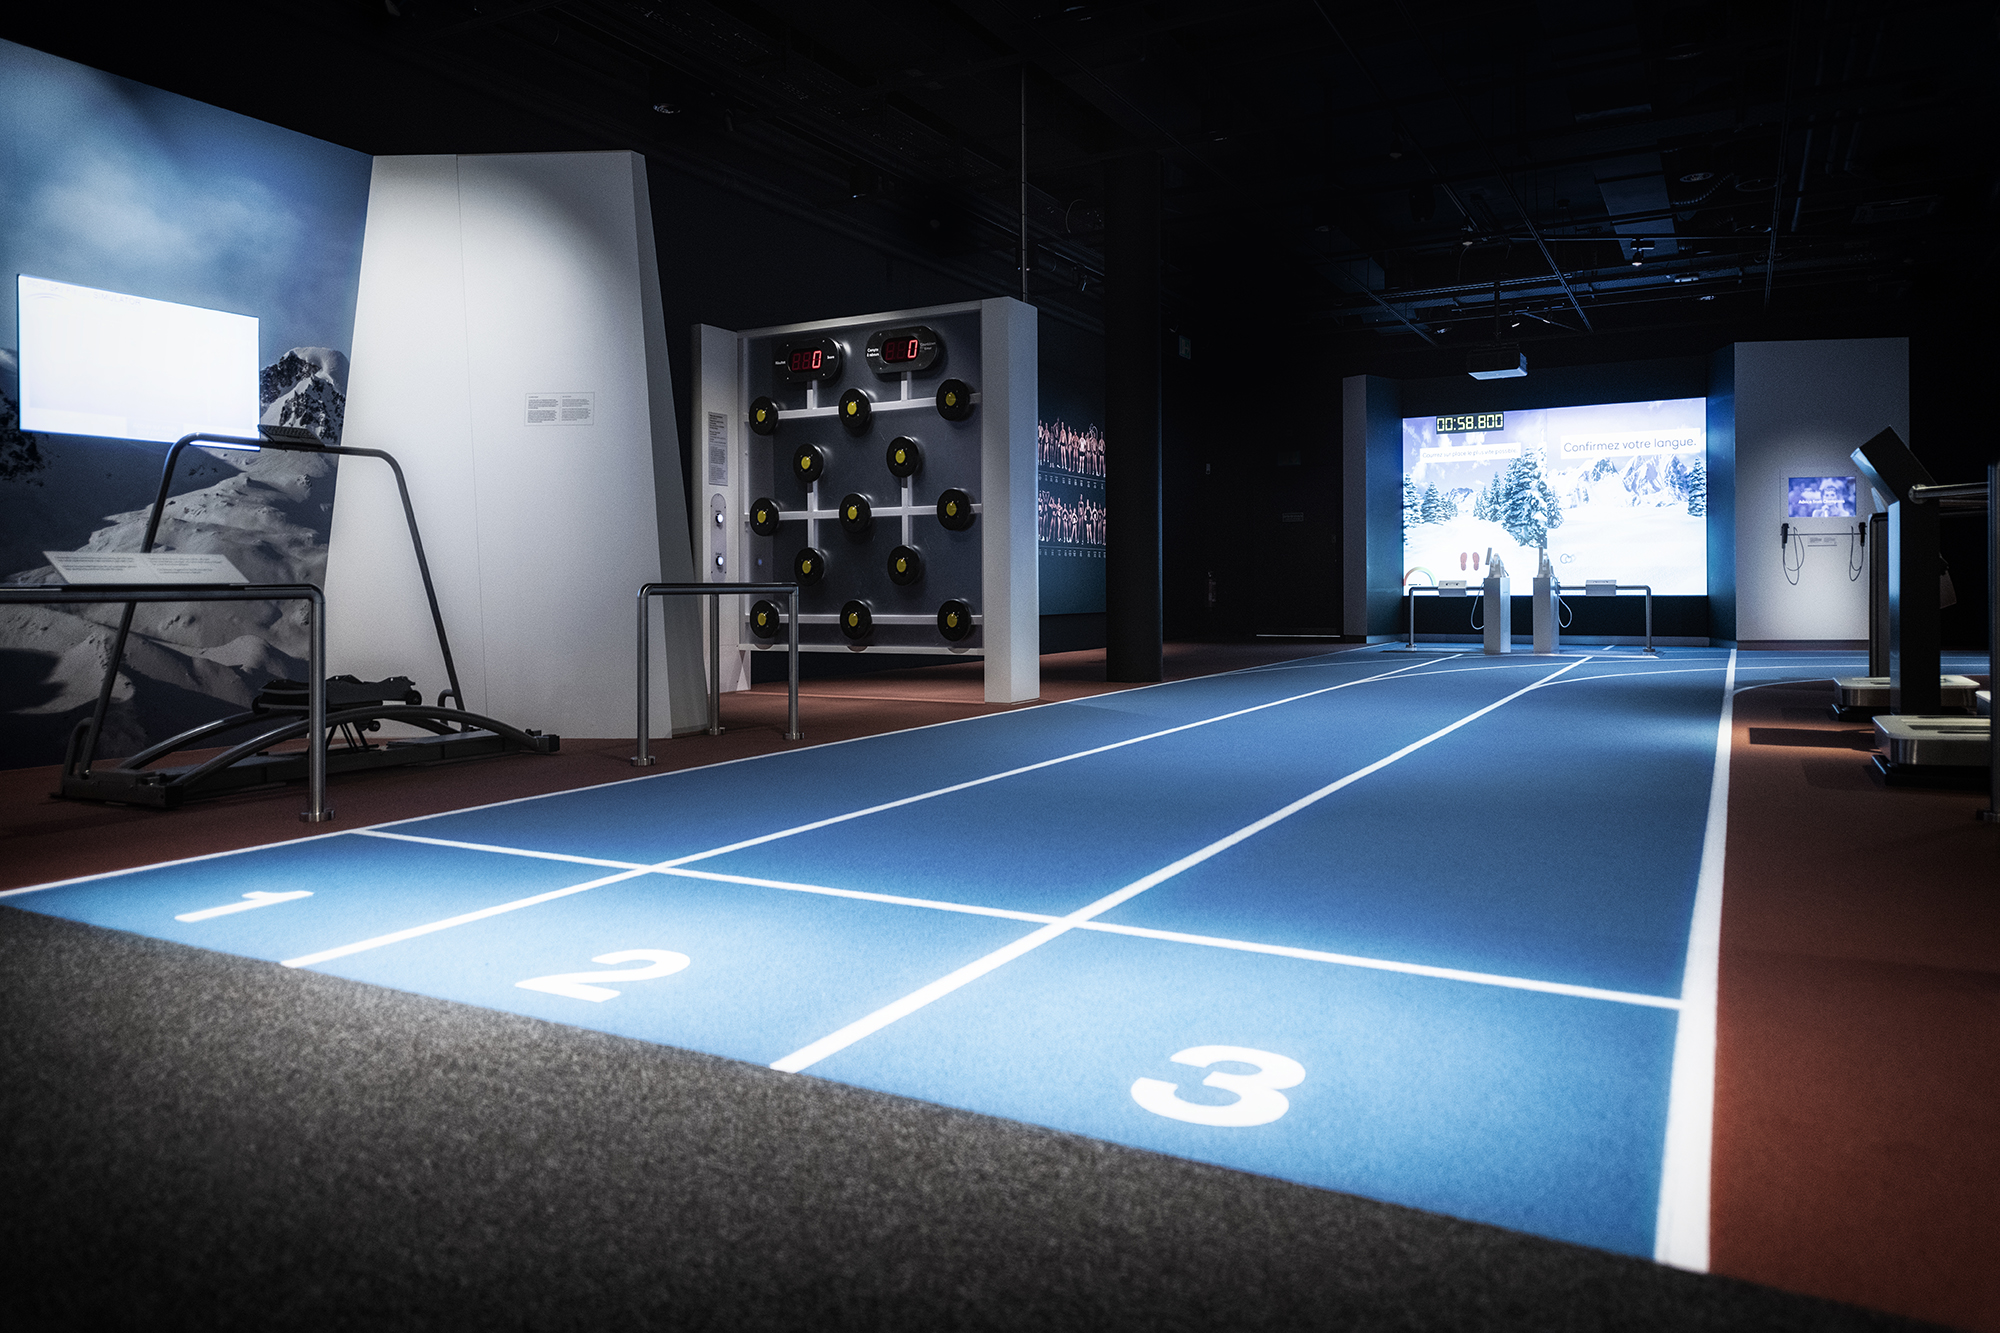 PU binder solutions from Dow were used in the Olympic Museum running track in Lausanne (Source: Dow)